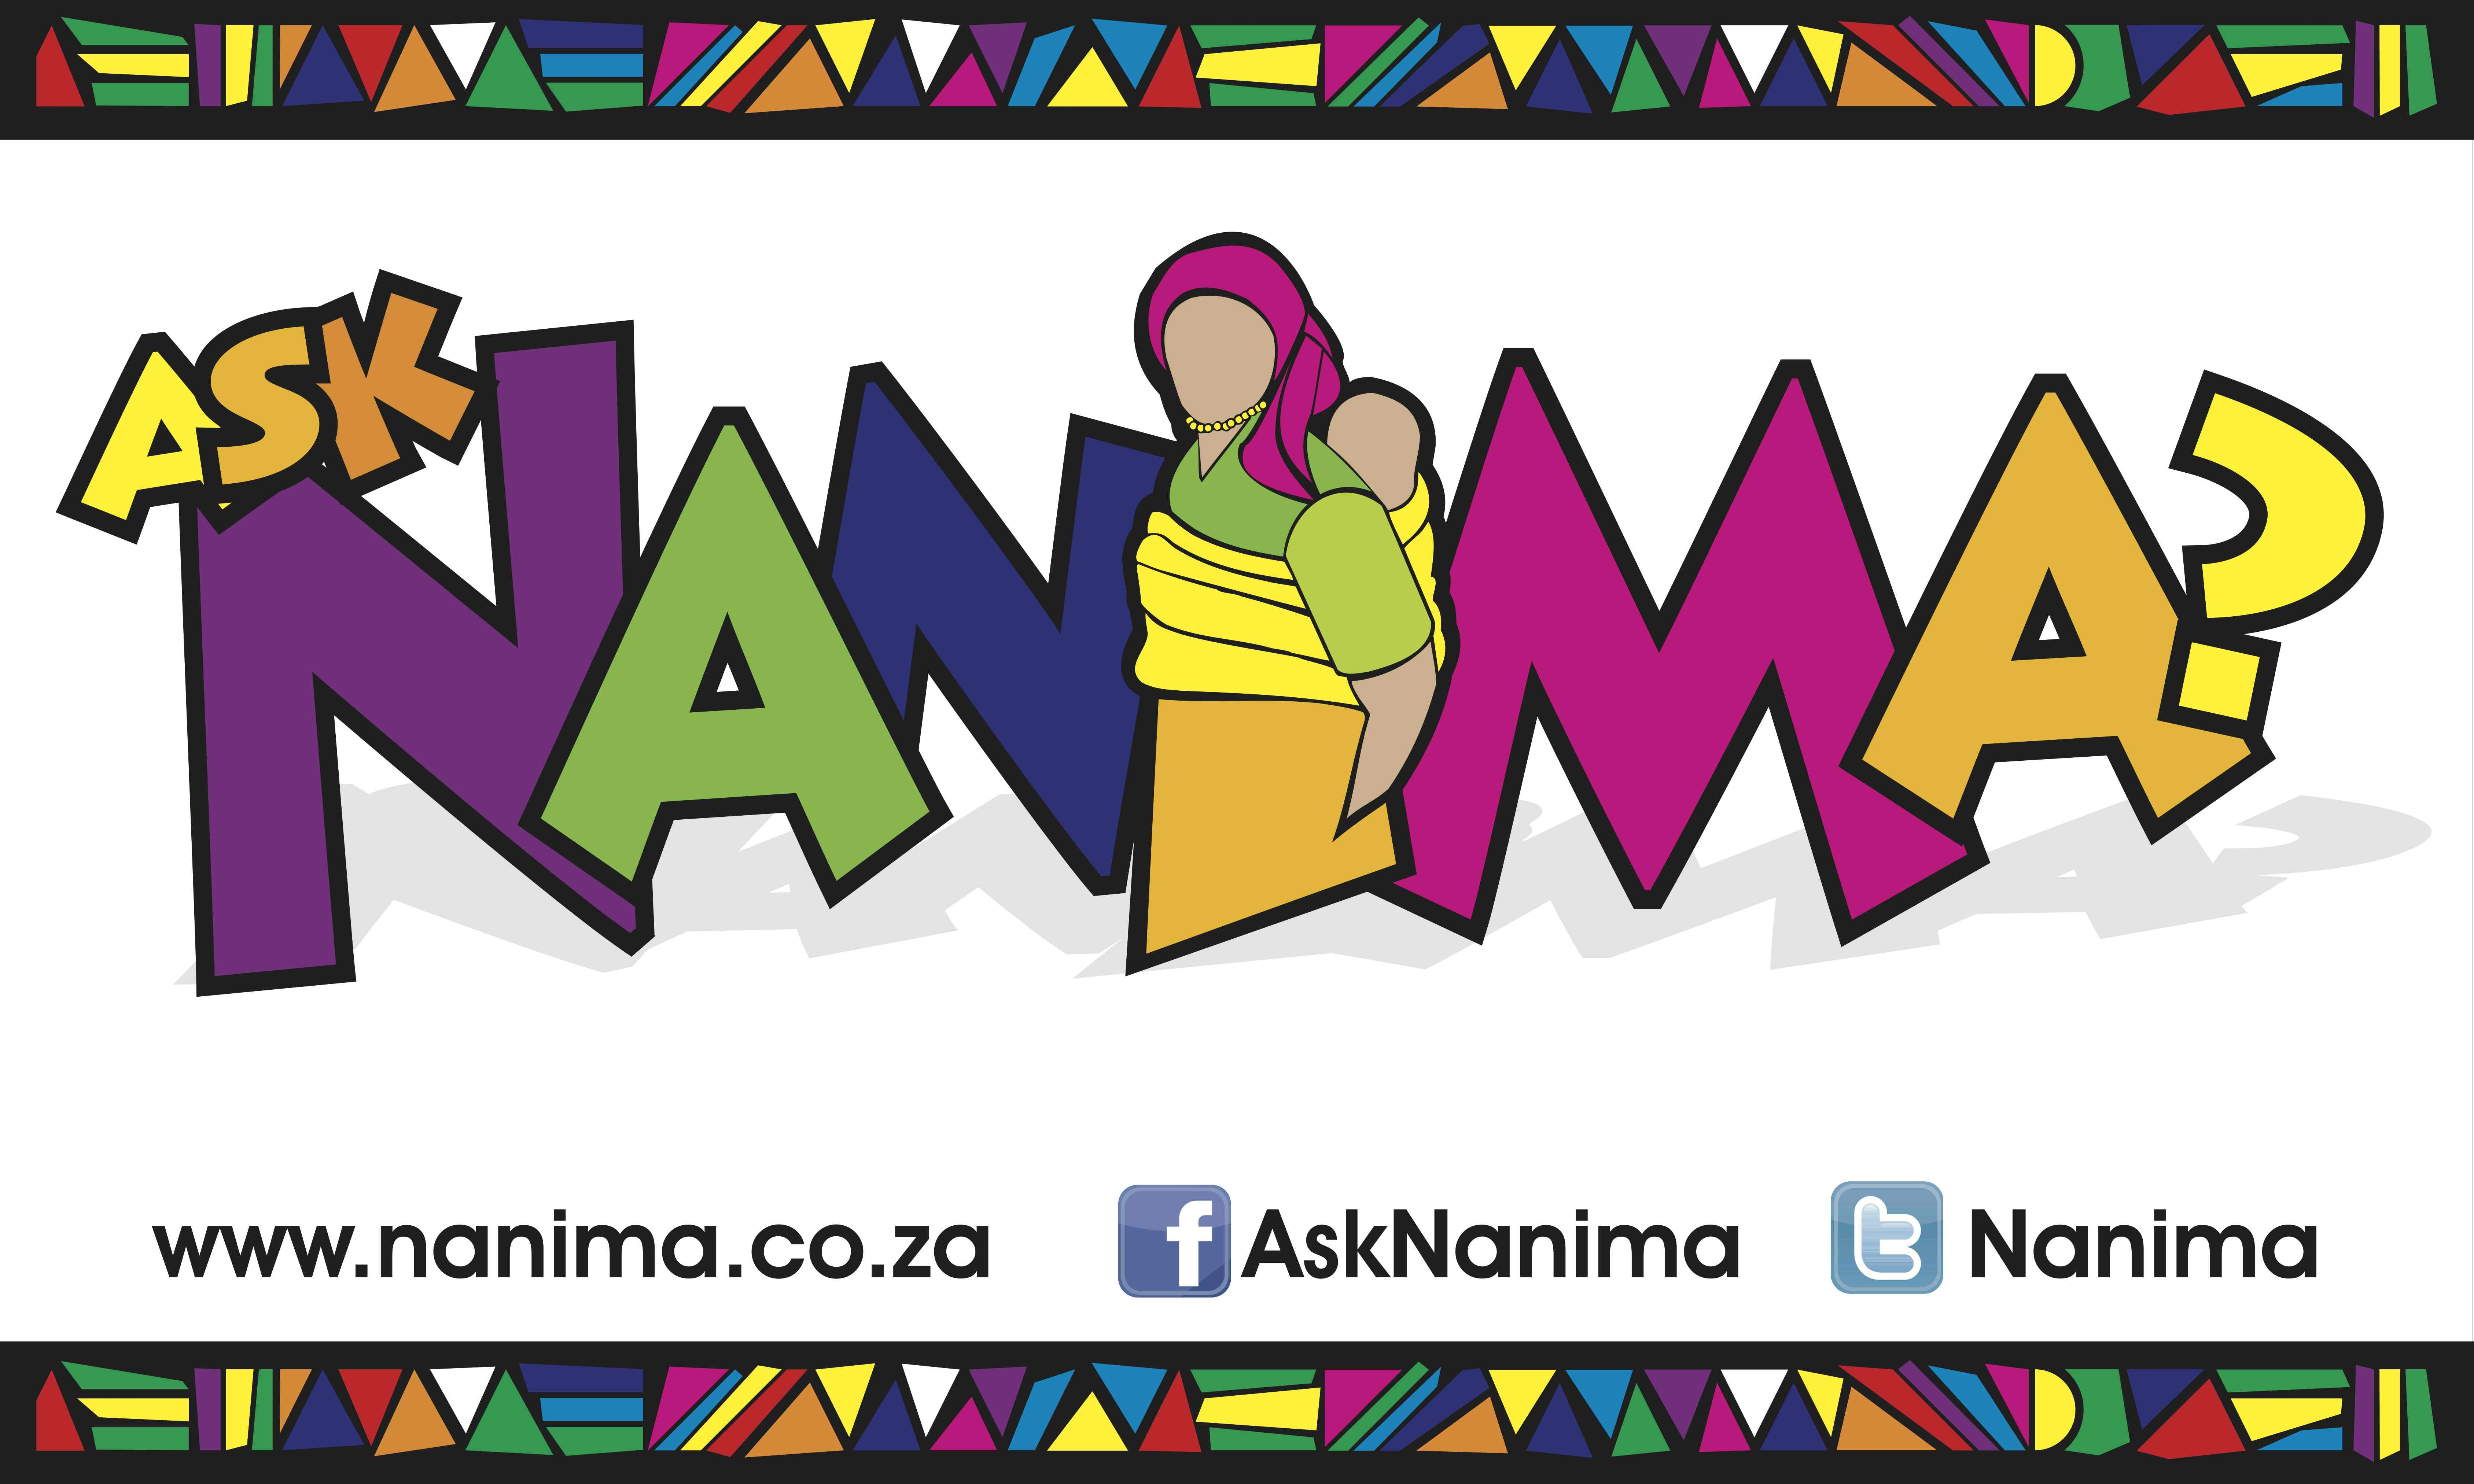 Who is Nanima?